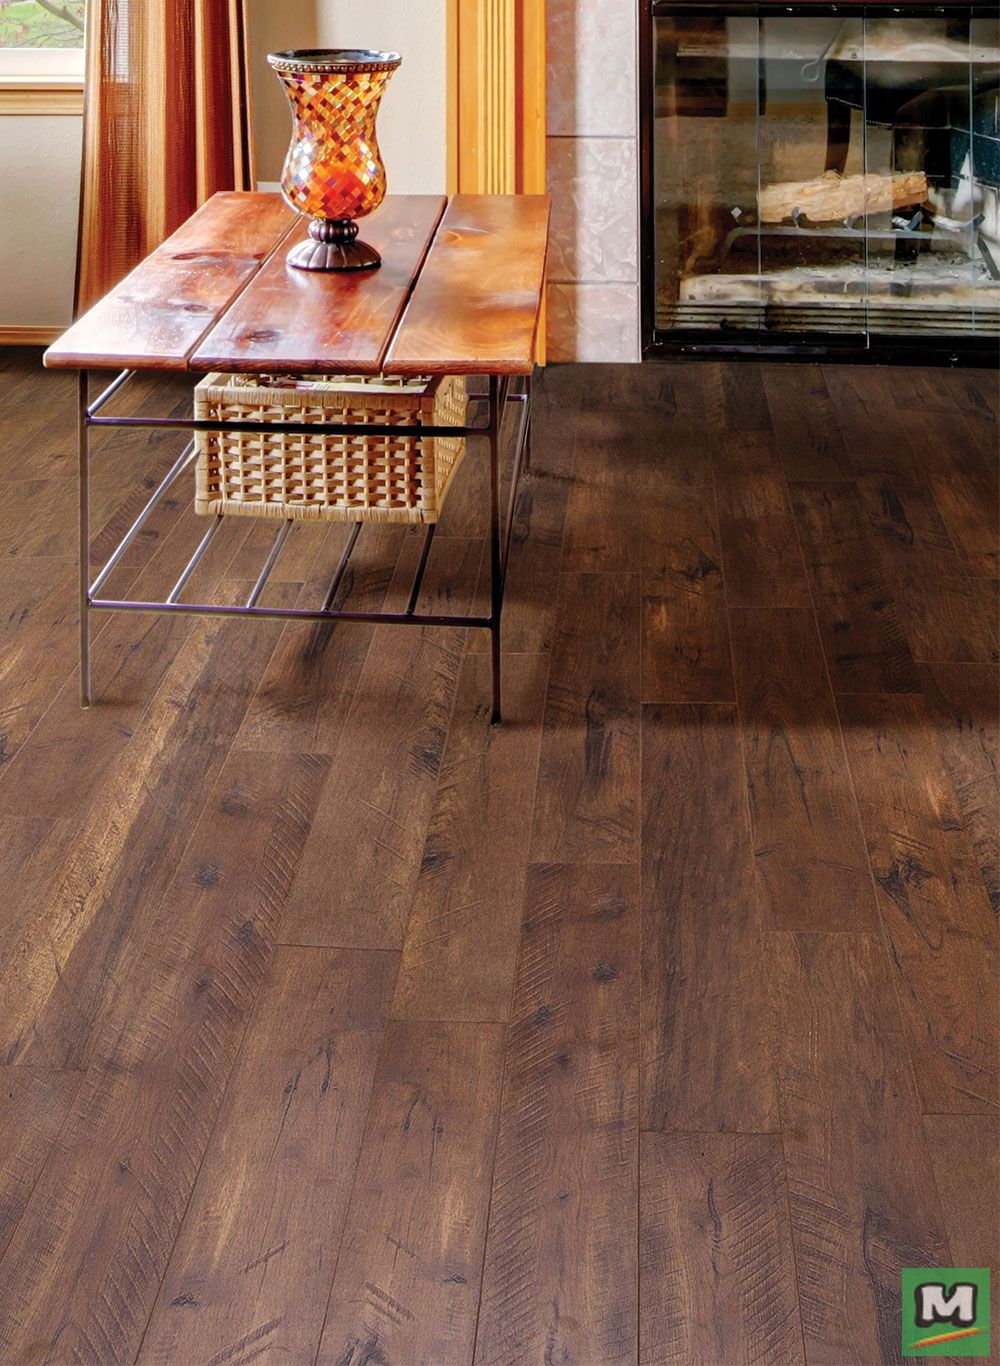 Get The Look Of Real Hardwood Flooring With No Glue And No Mess